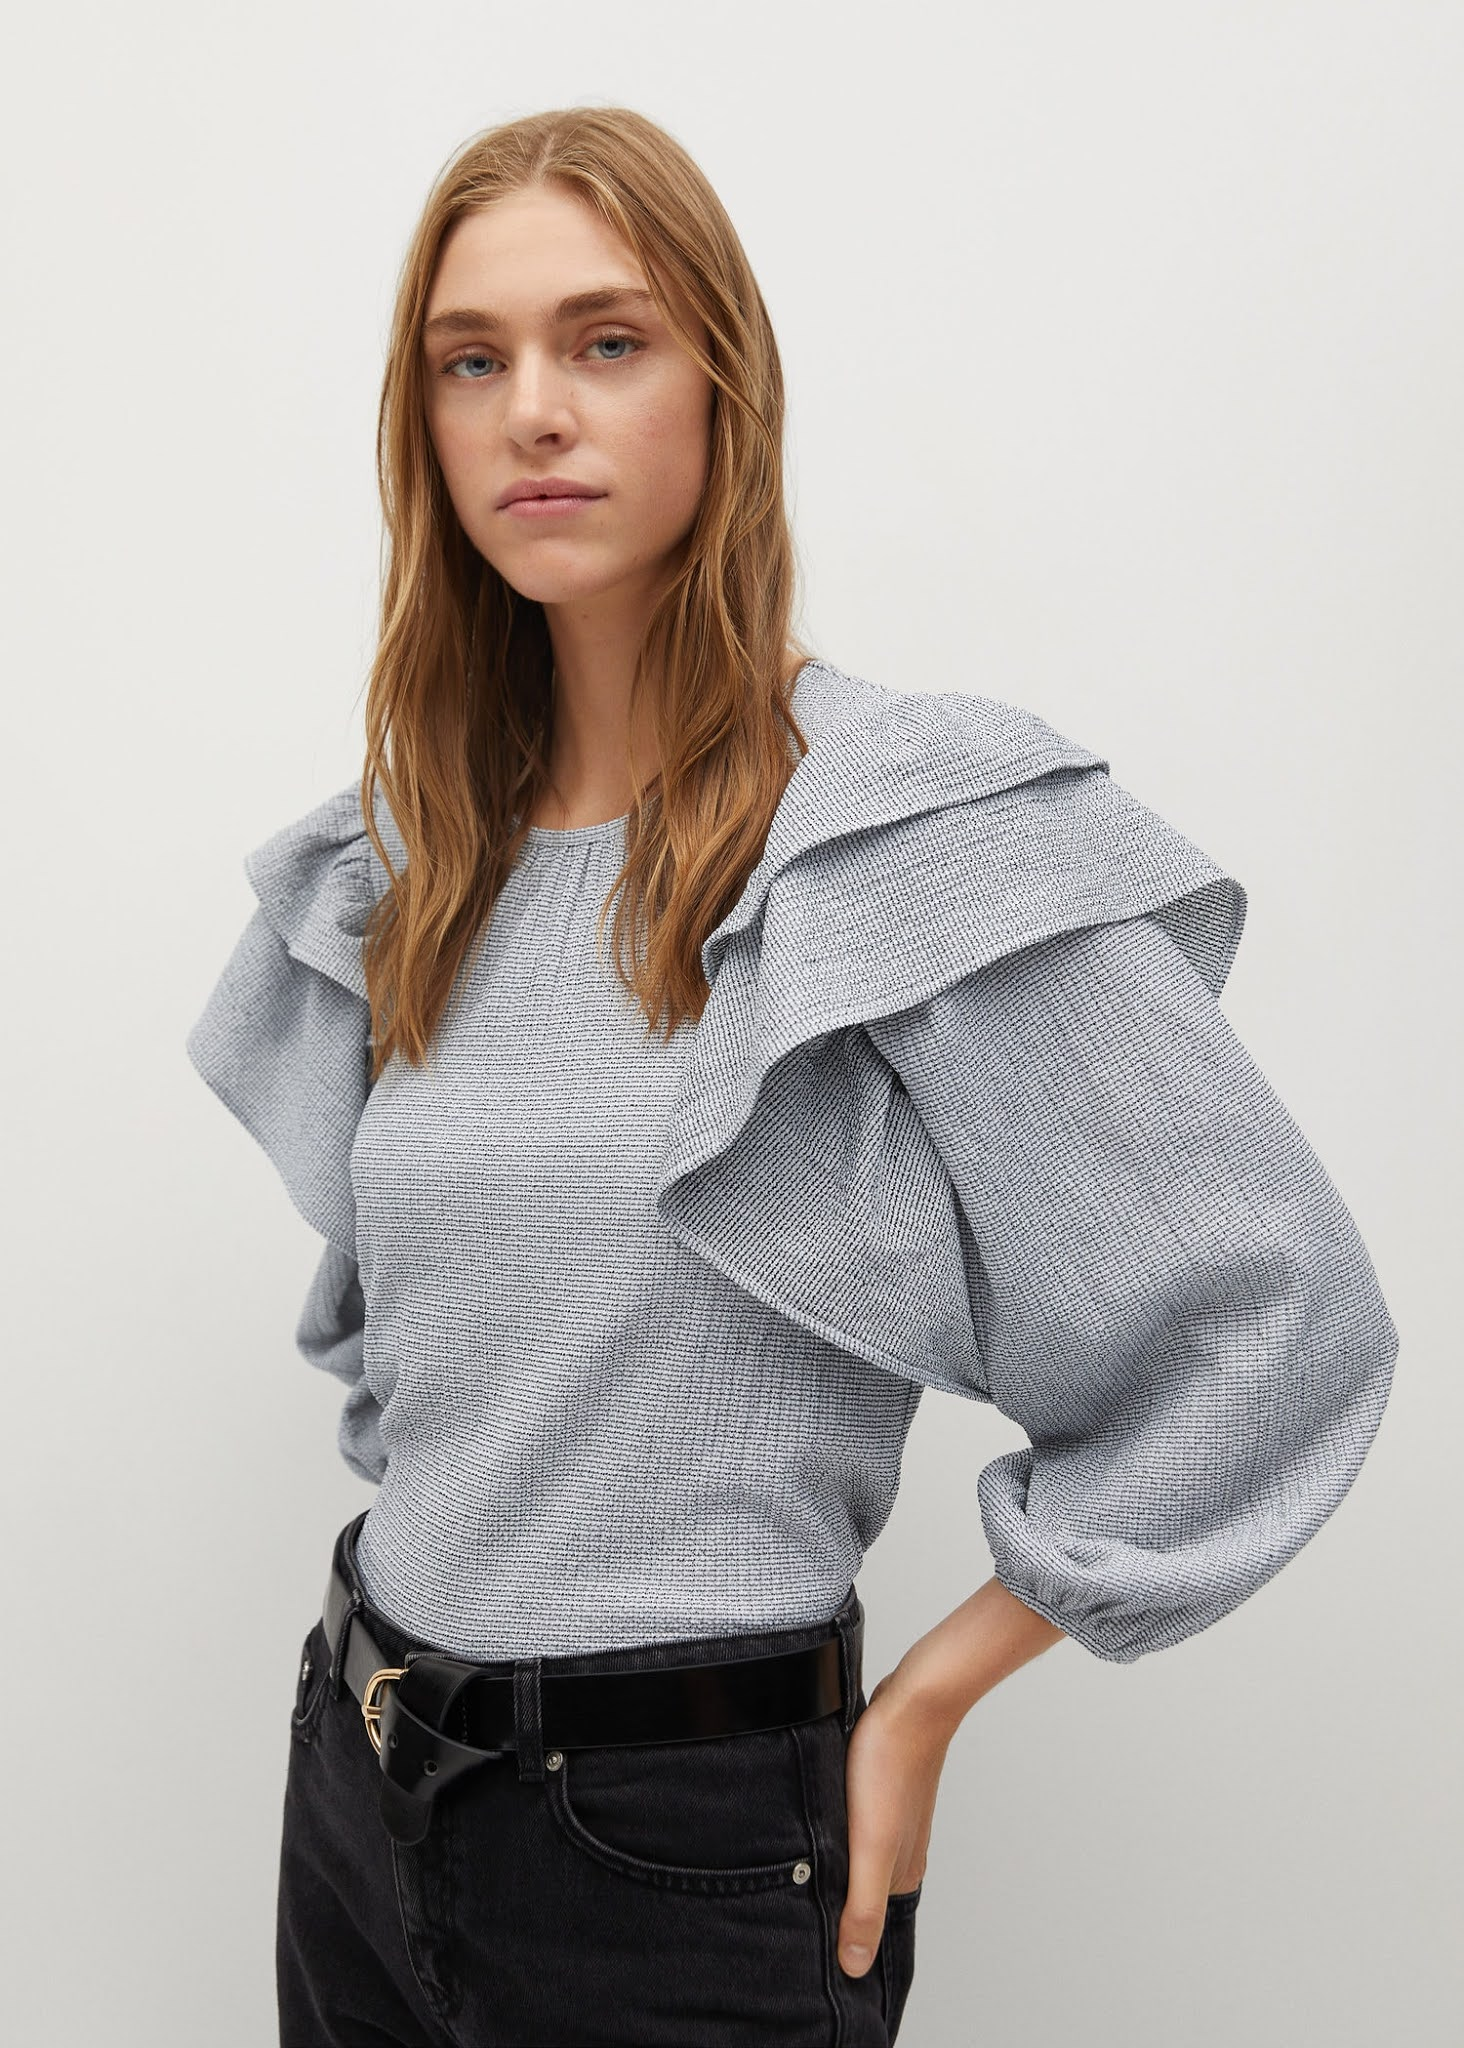 These Mango Tops Are Perfect for Zoom Meetings — Under $100 Ruffled Sleeve Top